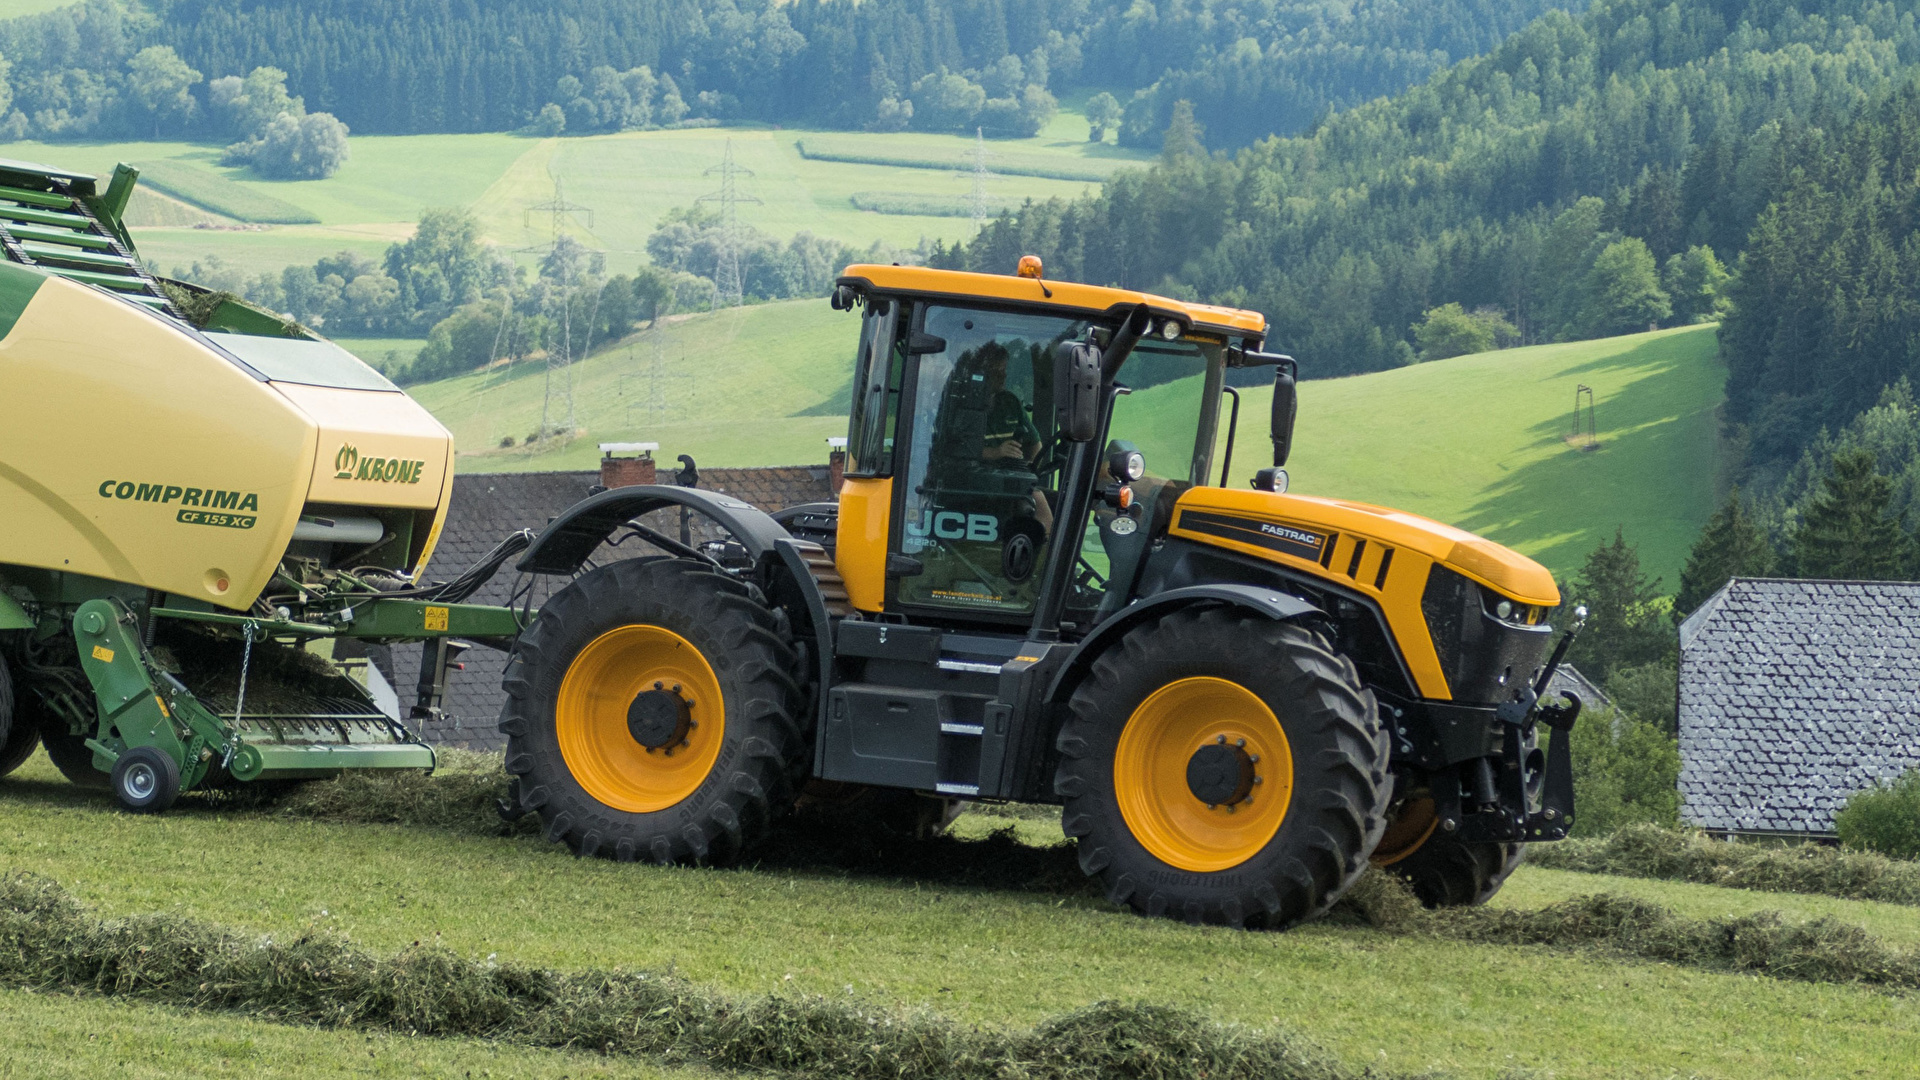 Wallpaper Agricultural machinery tractors 2014 18 JCB 1920x1080 1920x1080